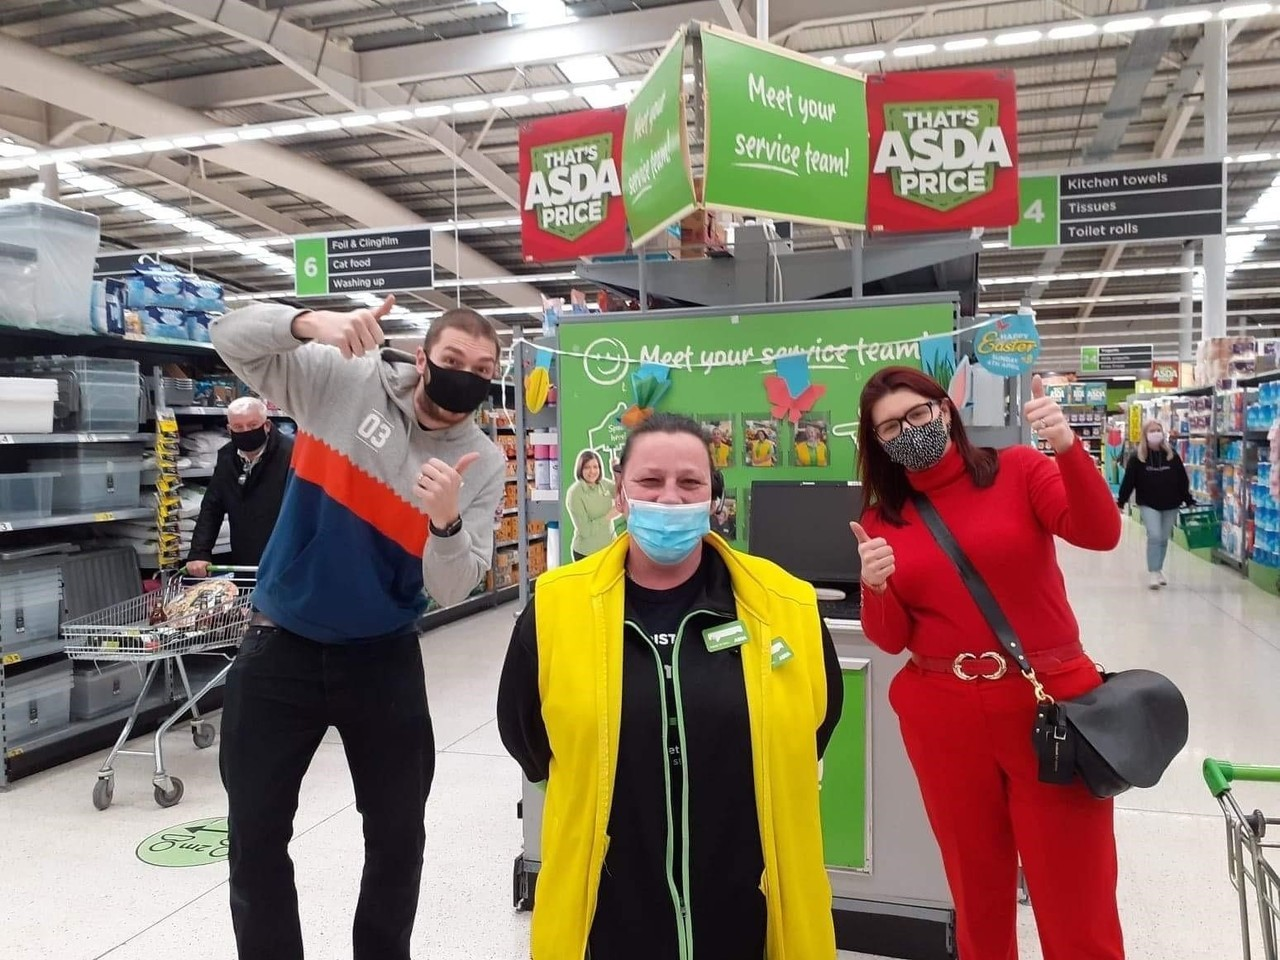 LadBaby pose for selfies with colleagues | Asda Long Eaton